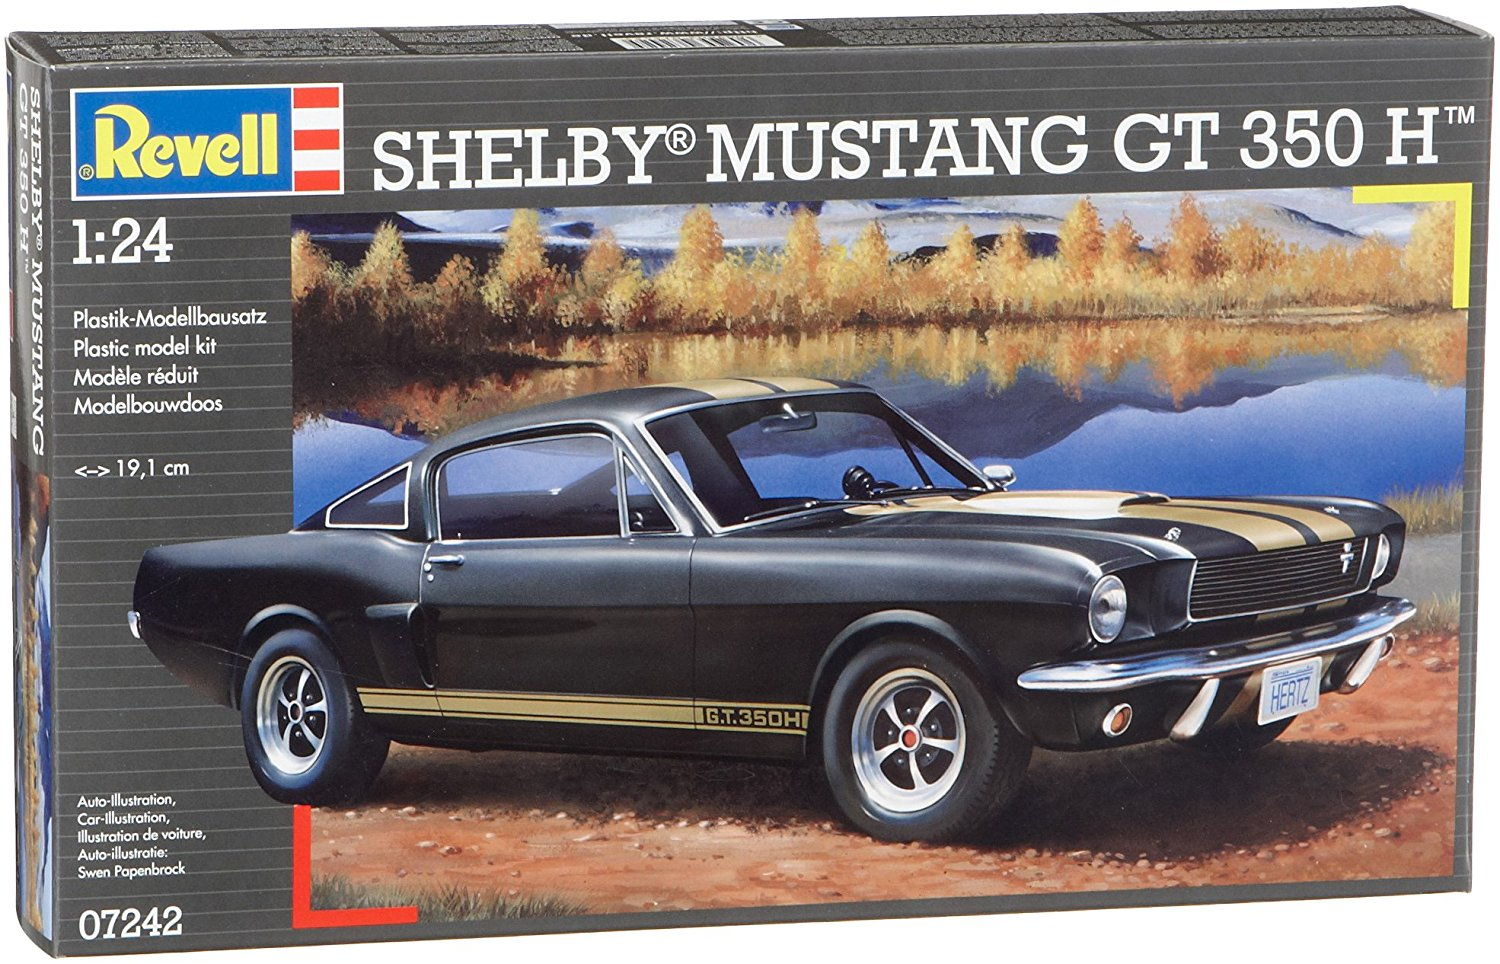 07242 1 24 Shelby Mustang GT 350 H, Revell 1:24 Shelby Mustang GT 350 H Car Model Kit Set... by